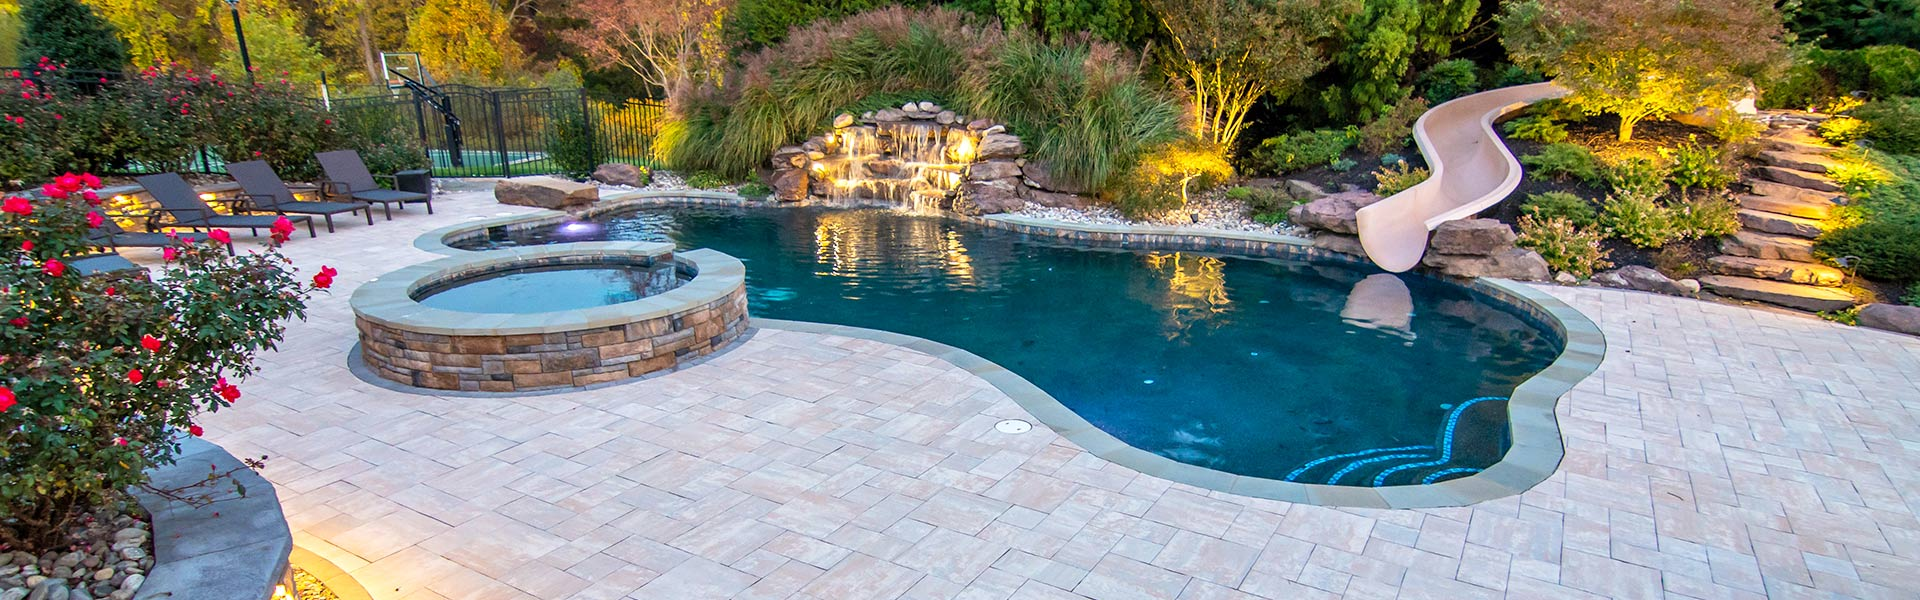 Pool Patio Design in Clarksville, Howard County, Ellicott City, Sykesville